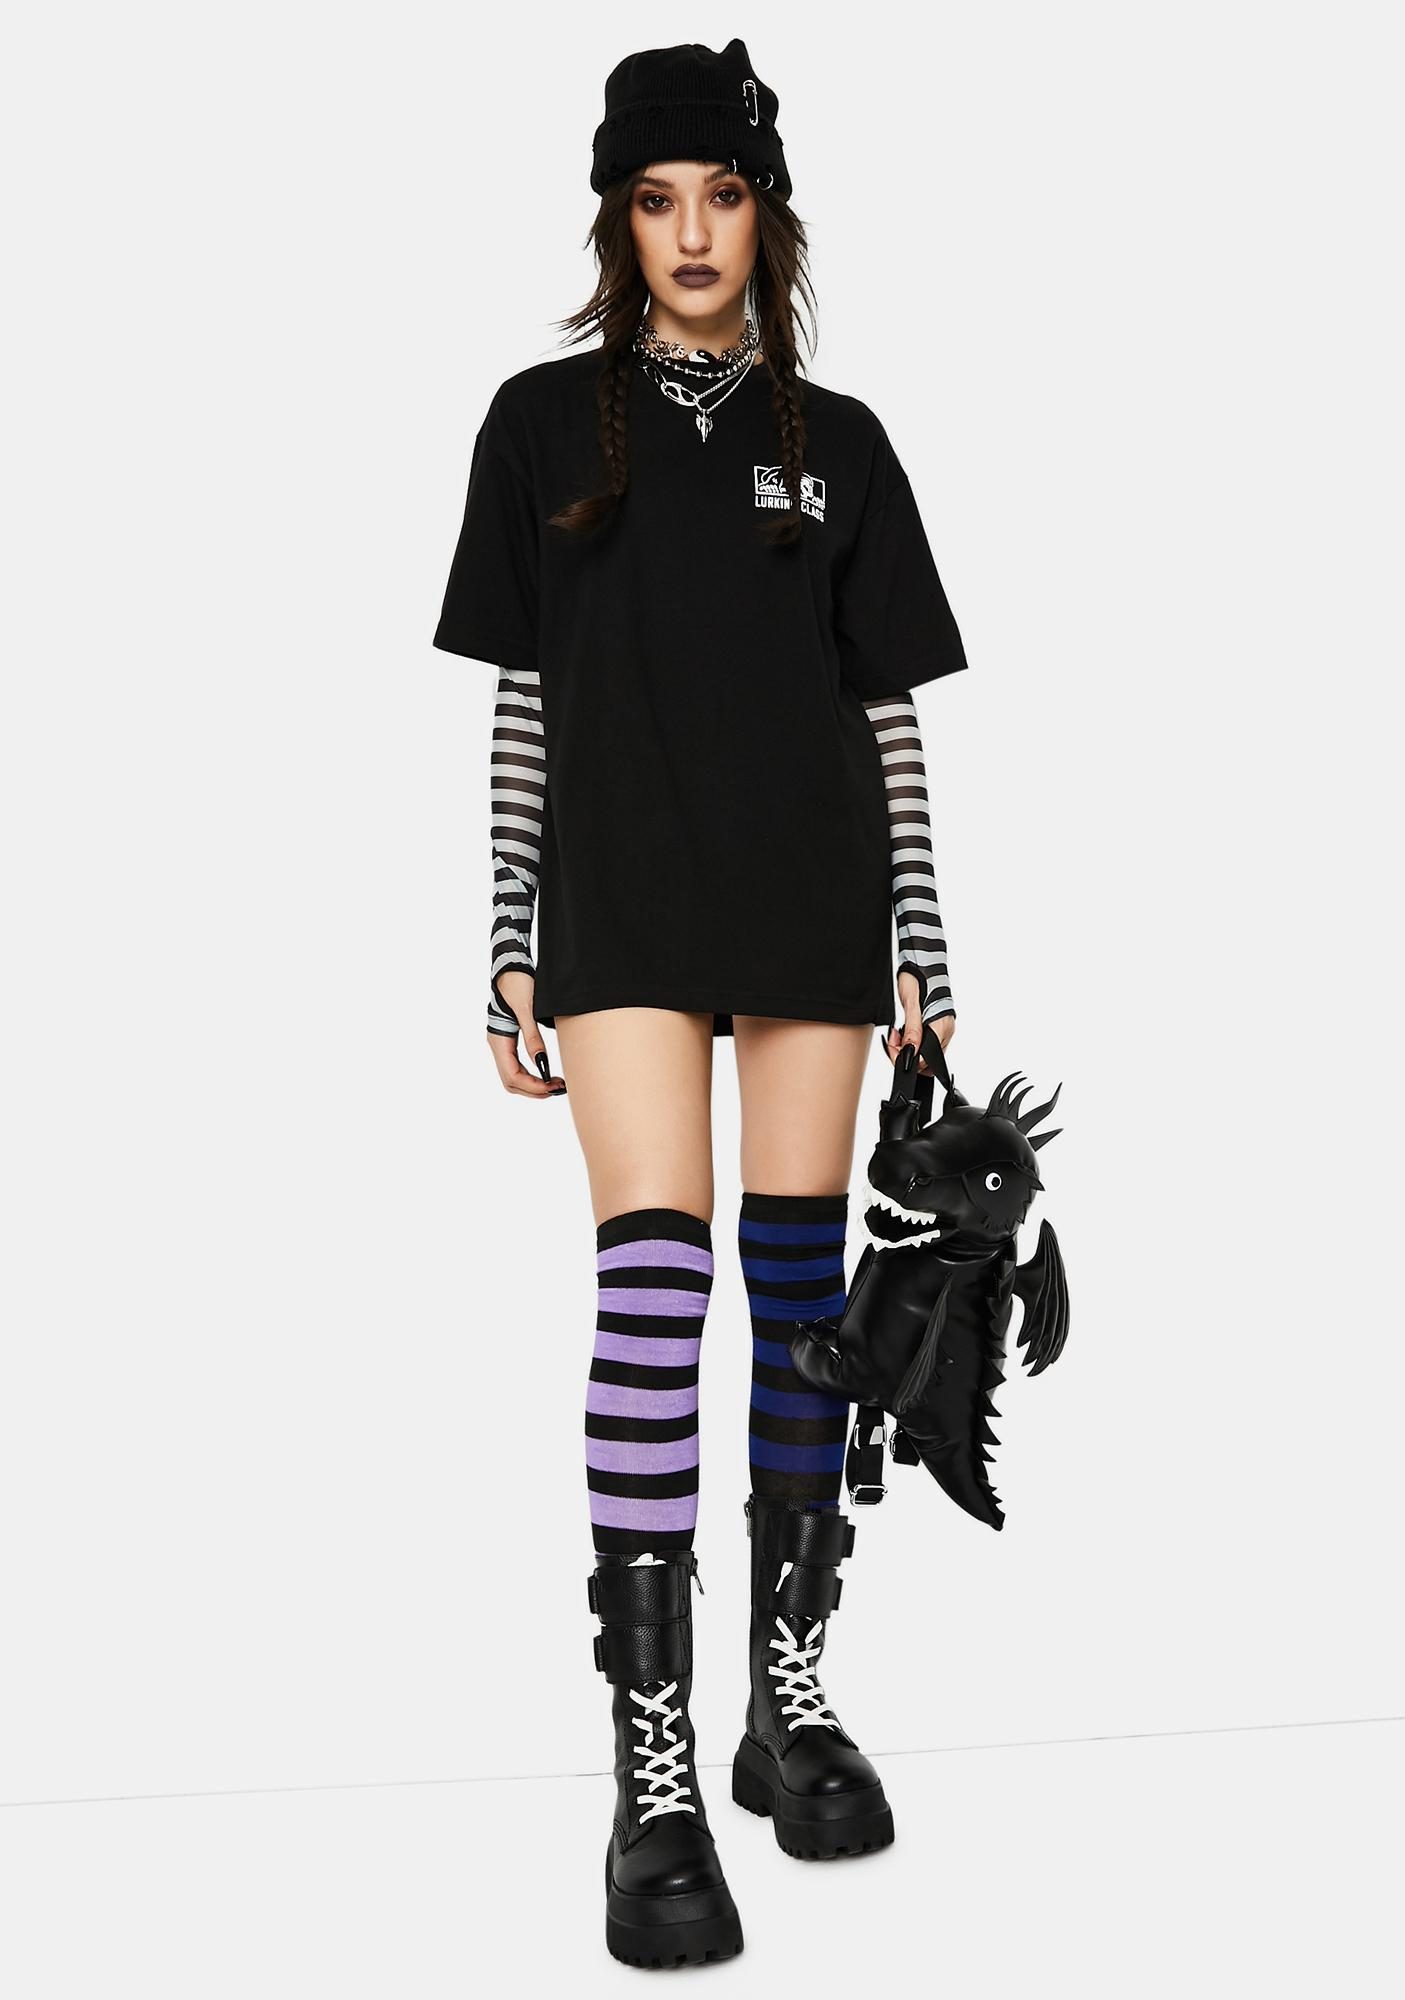 Lurking Class Rest In Piss 2020 Graphic Tee